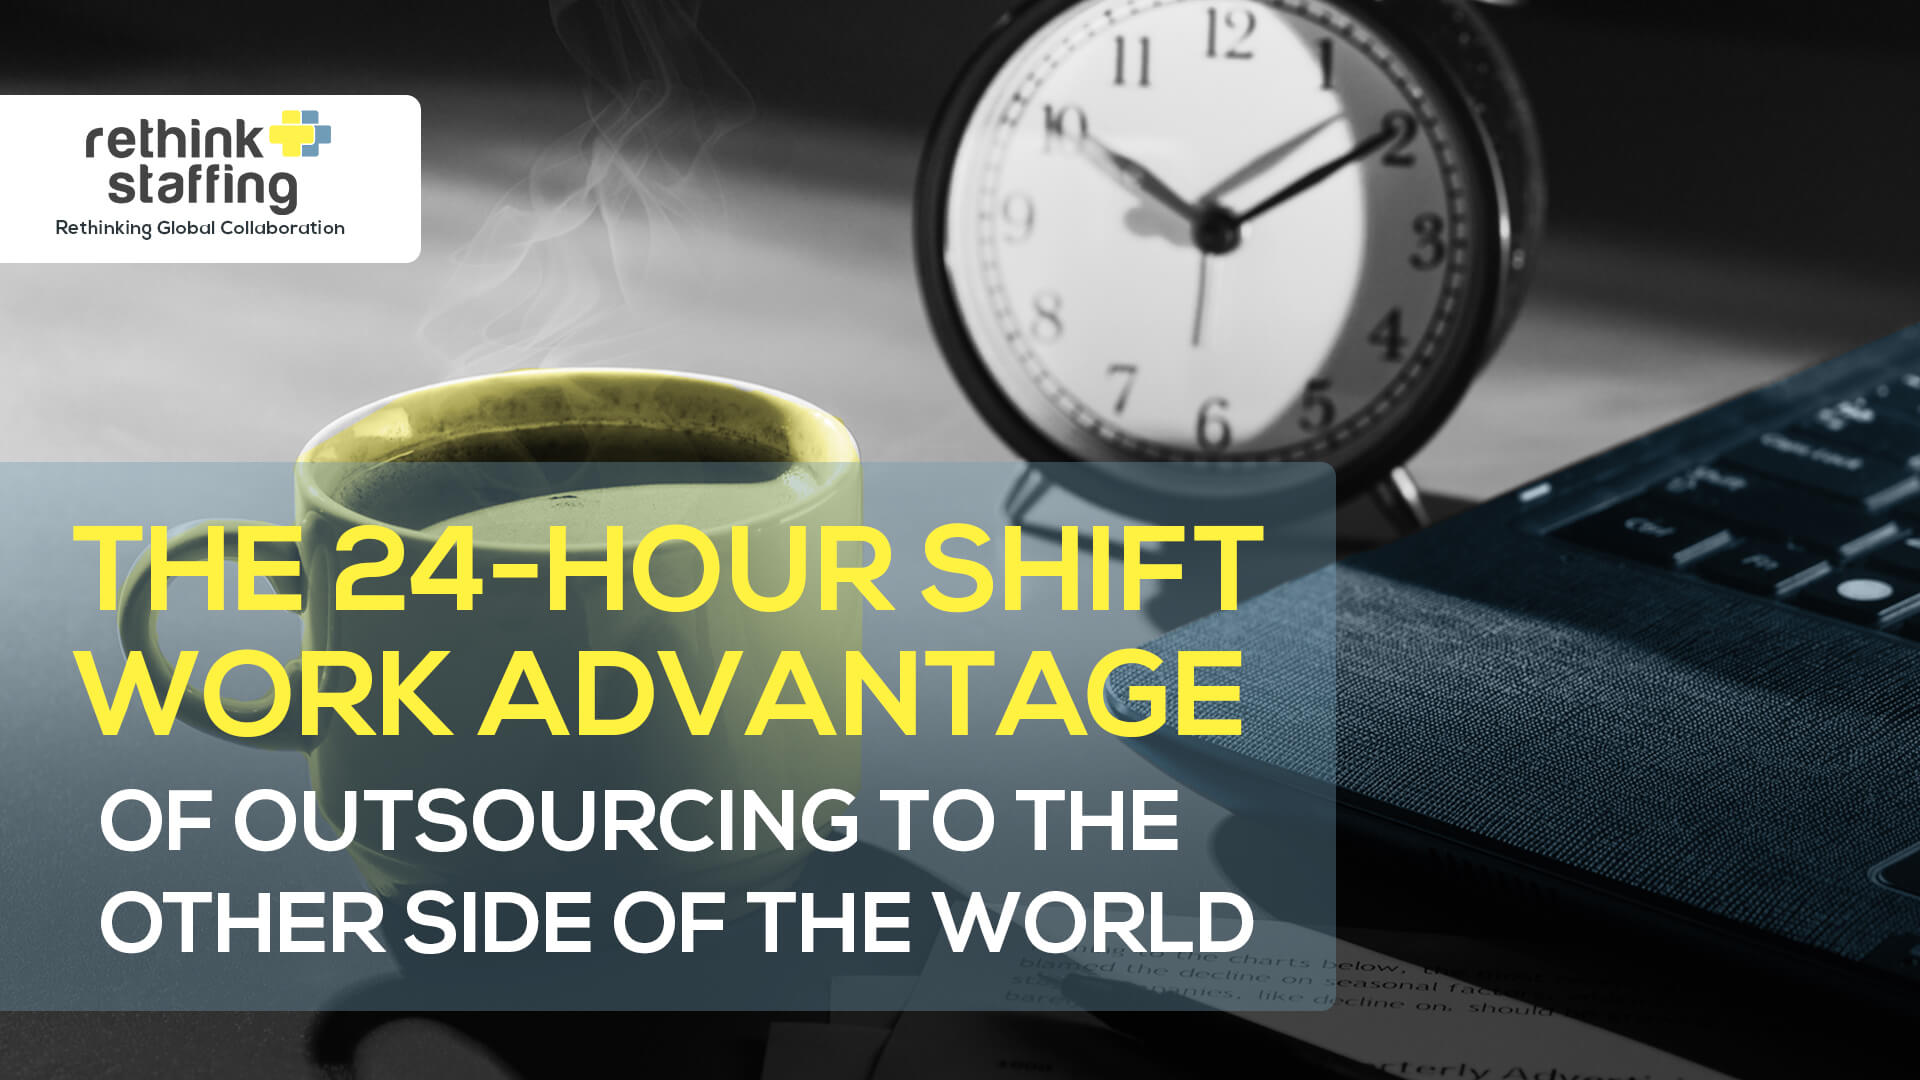 The 24-Hour Shift Work Advantage of Outsourcing to the Philippines